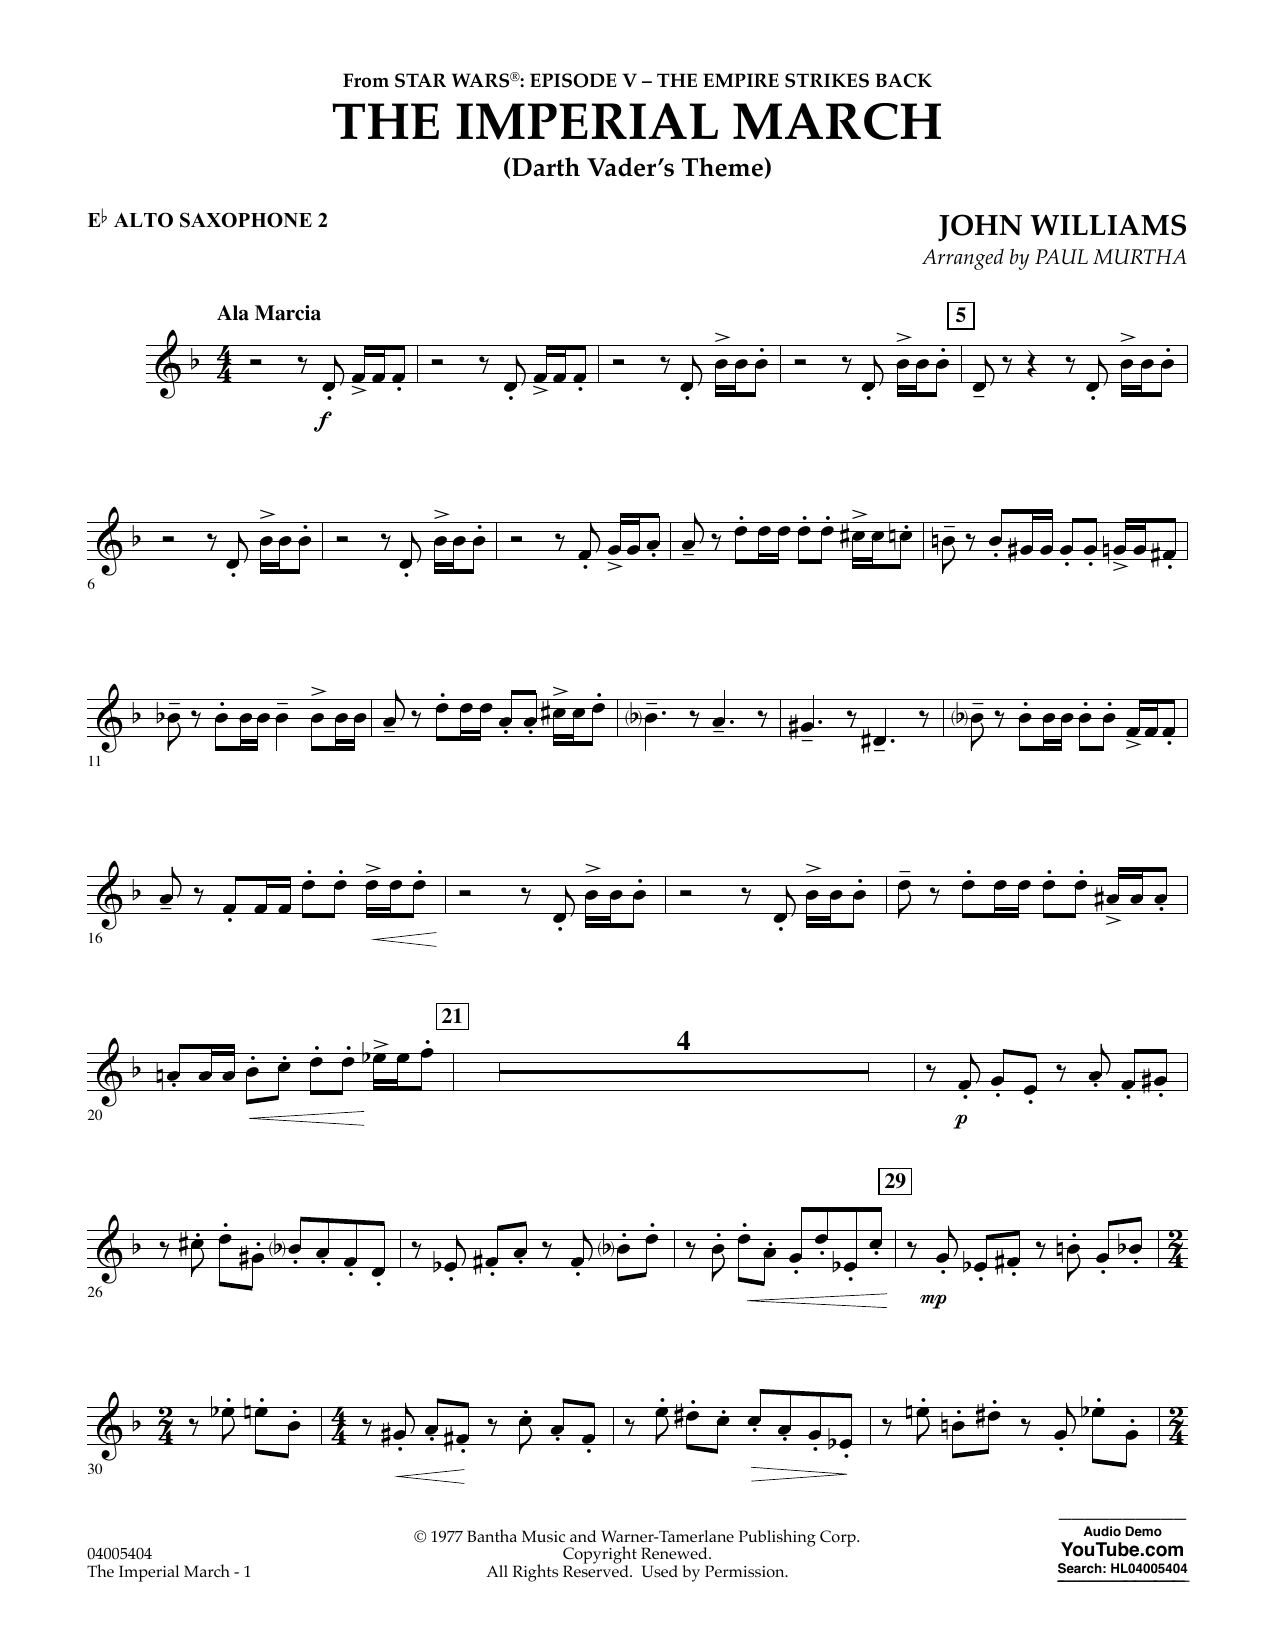 Paul Murtha The Imperial March (Darth Vader's Theme) - Eb Alto Saxophone 2 sheet music notes and chords. Download Printable PDF.